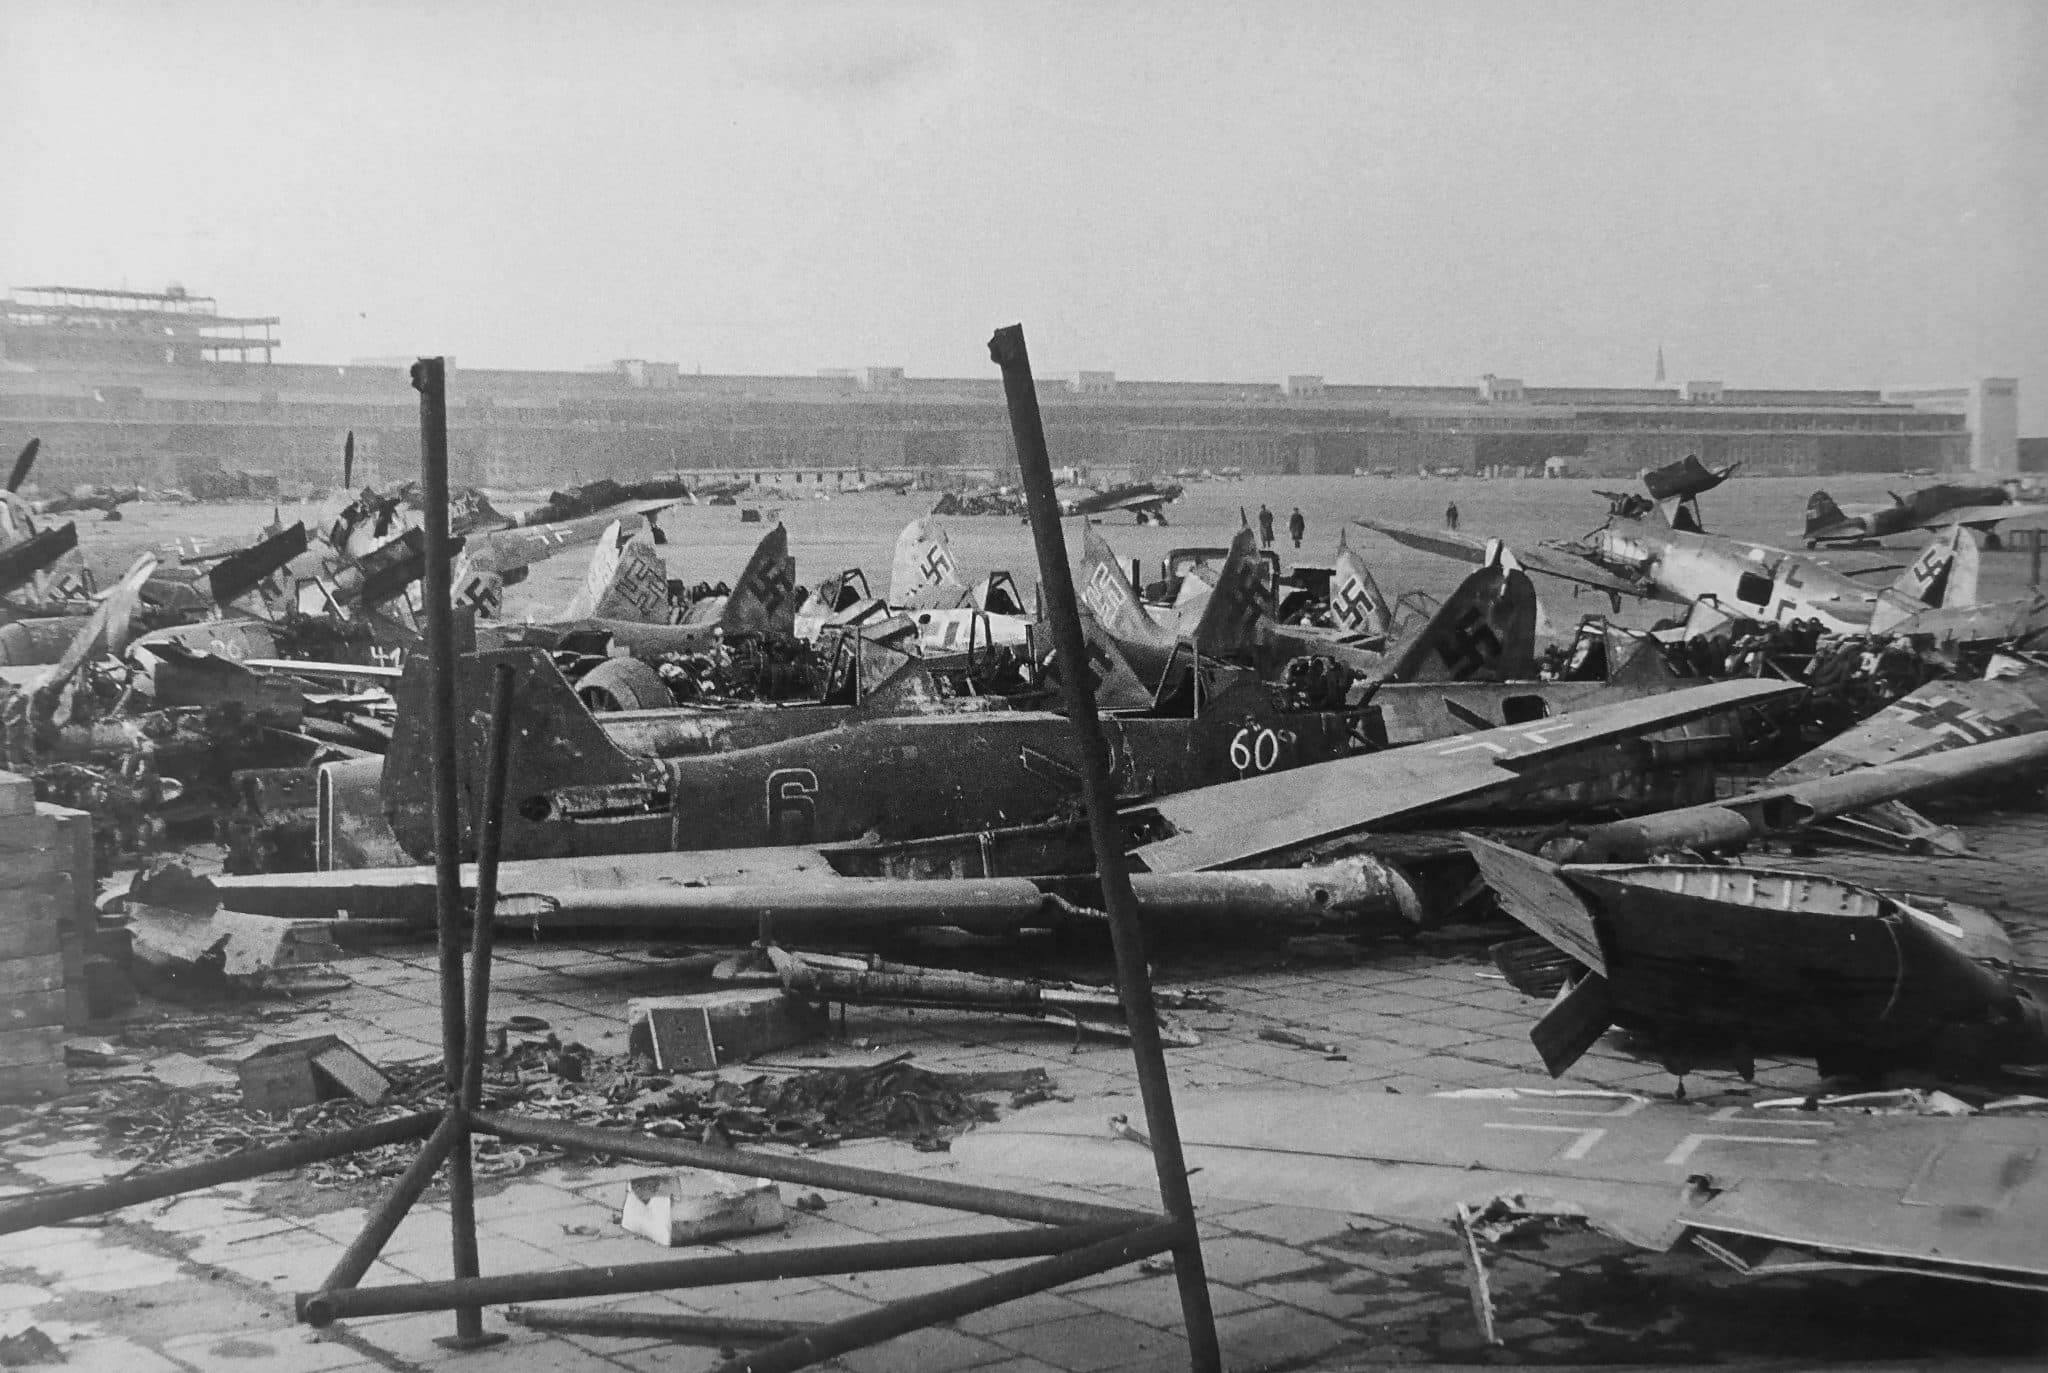 In the foreground are the Fokke-Wulf Fw.190 fighters. In the background are the Soviet IL-2 attack aircraft